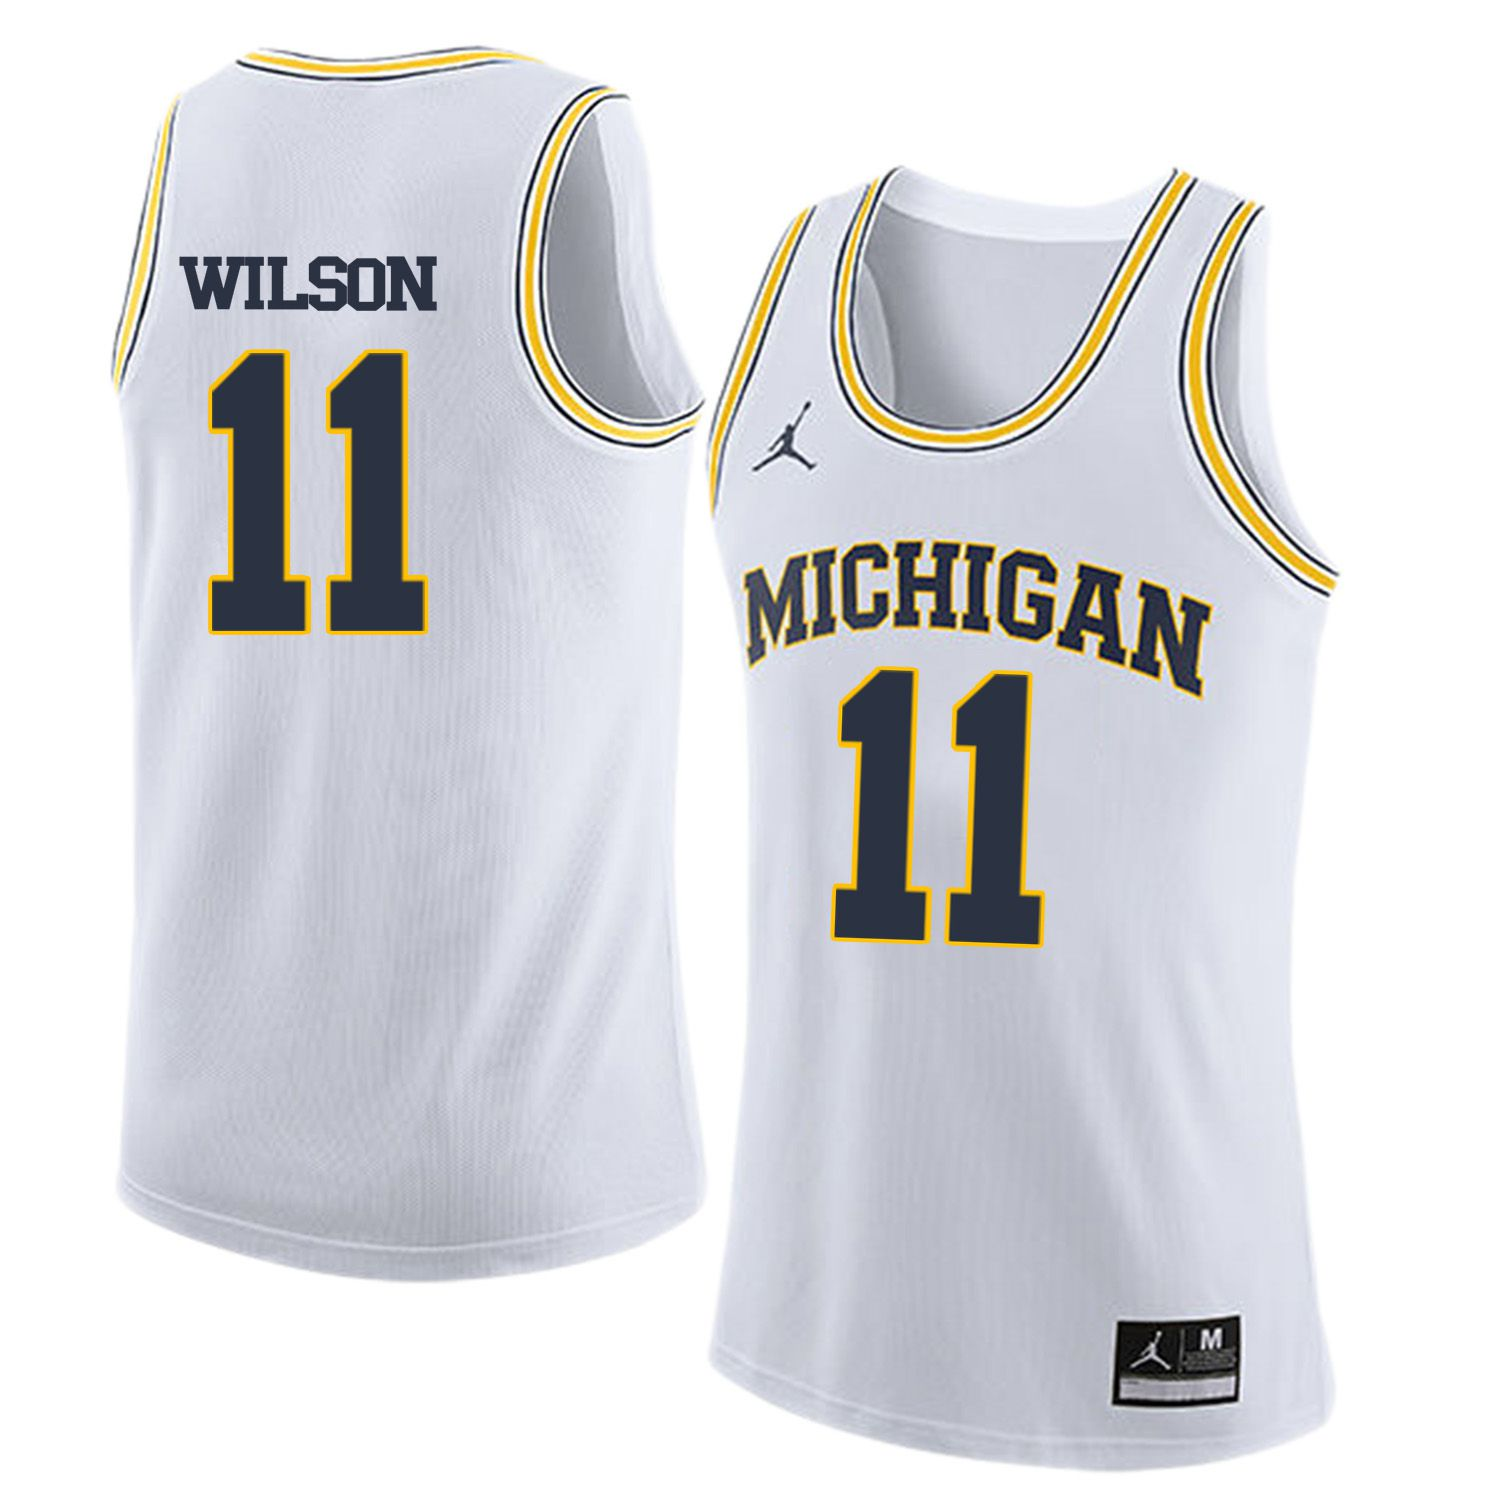 Men Jordan University of Michigan Basketball White 11 Wilson Customized NCAA Jerseys